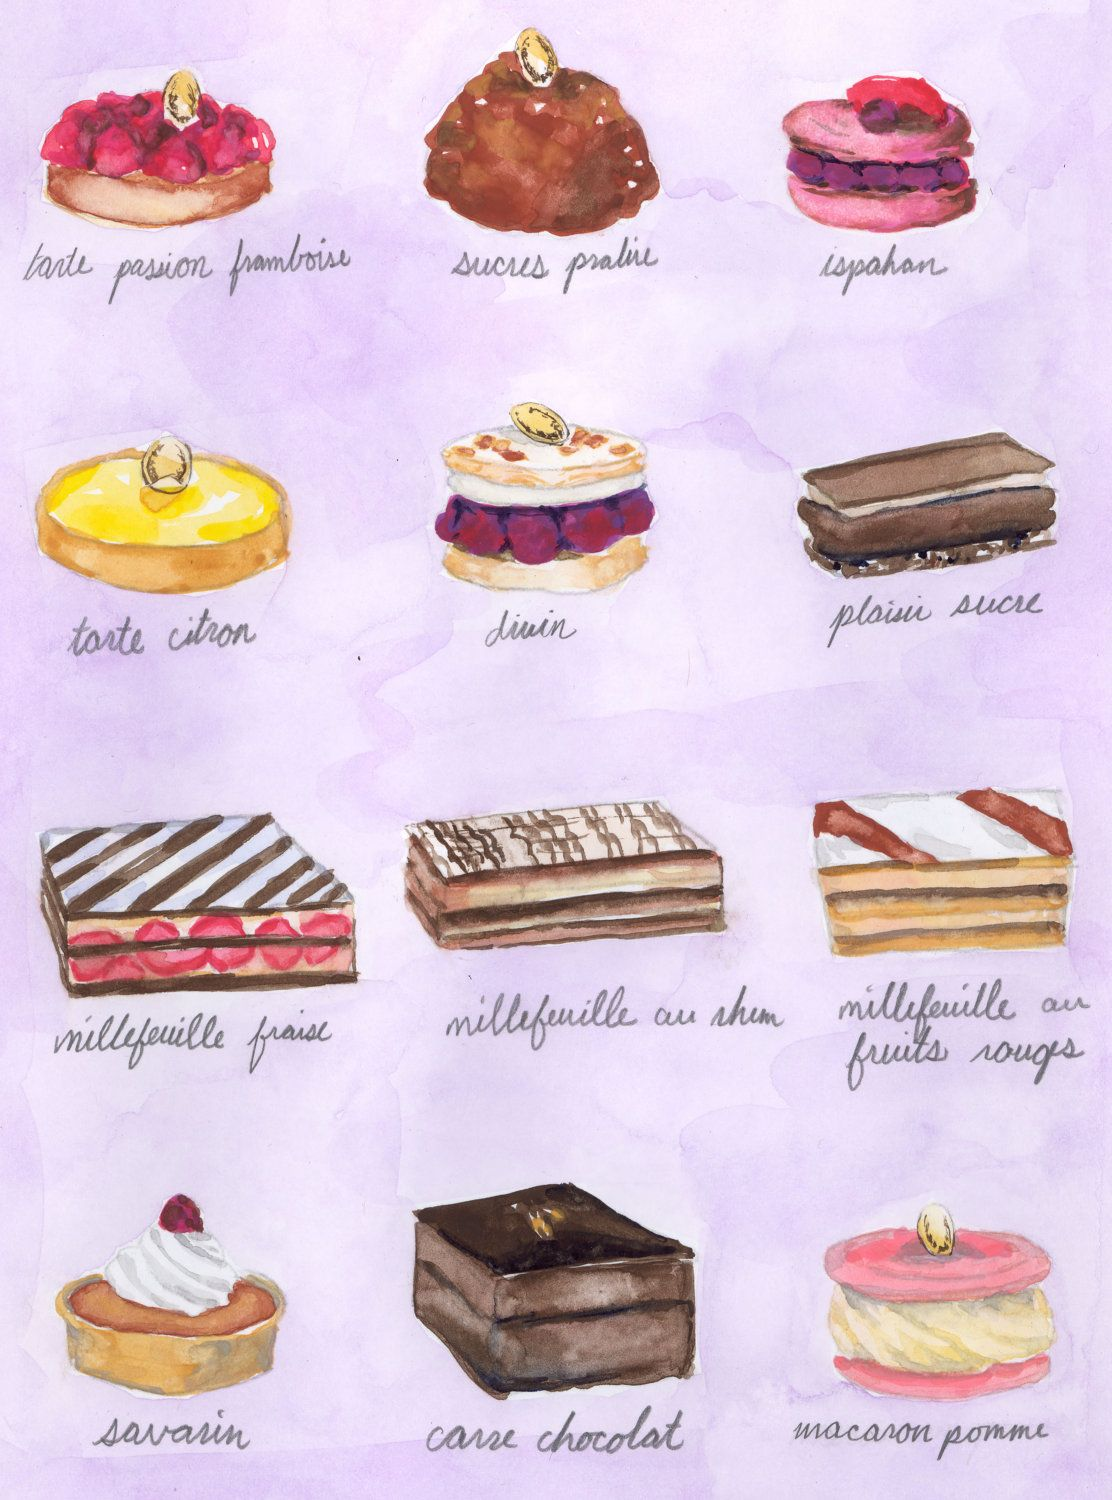 Paris Pastry Dessert Luxe Laduree Menu Watercolor Painting 8 X